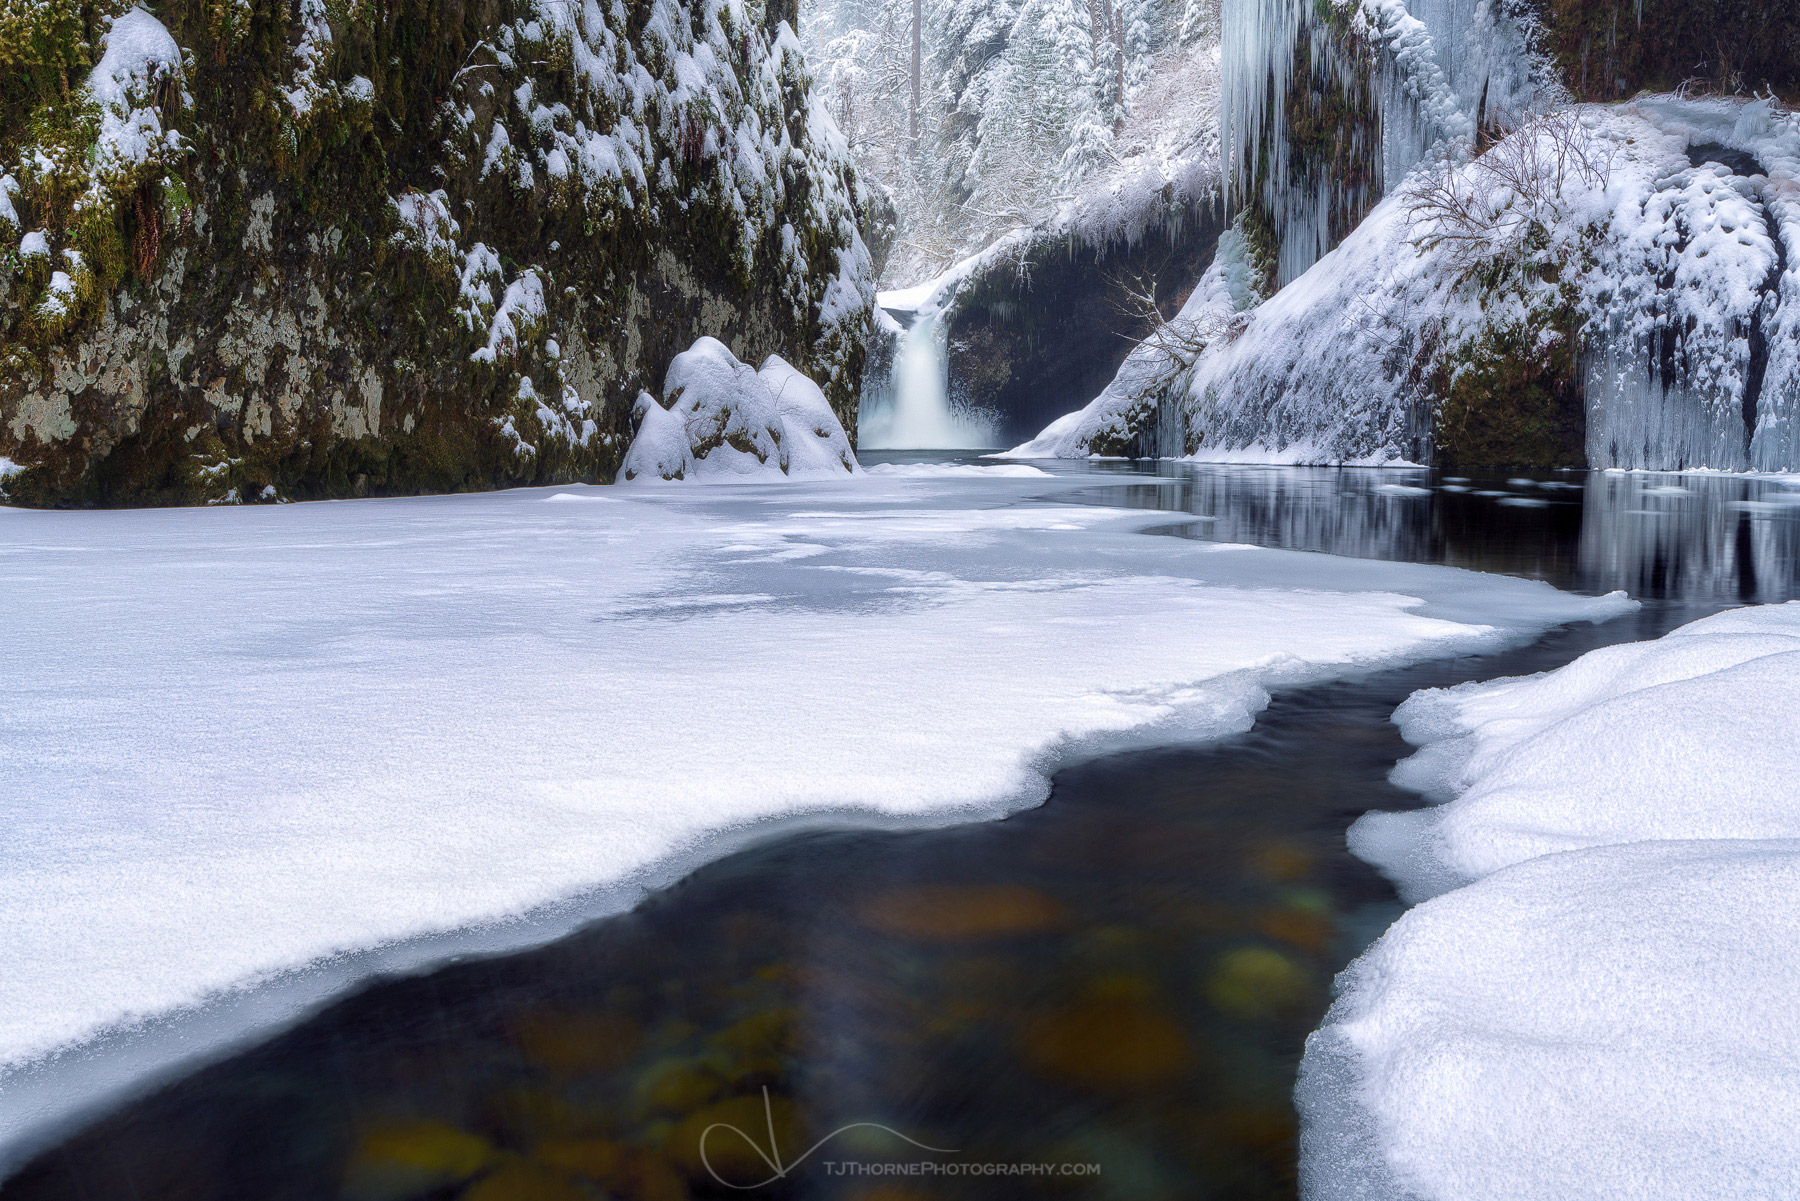 punchbowl falls, snow, winter, columbia river gorge, oregon, photo